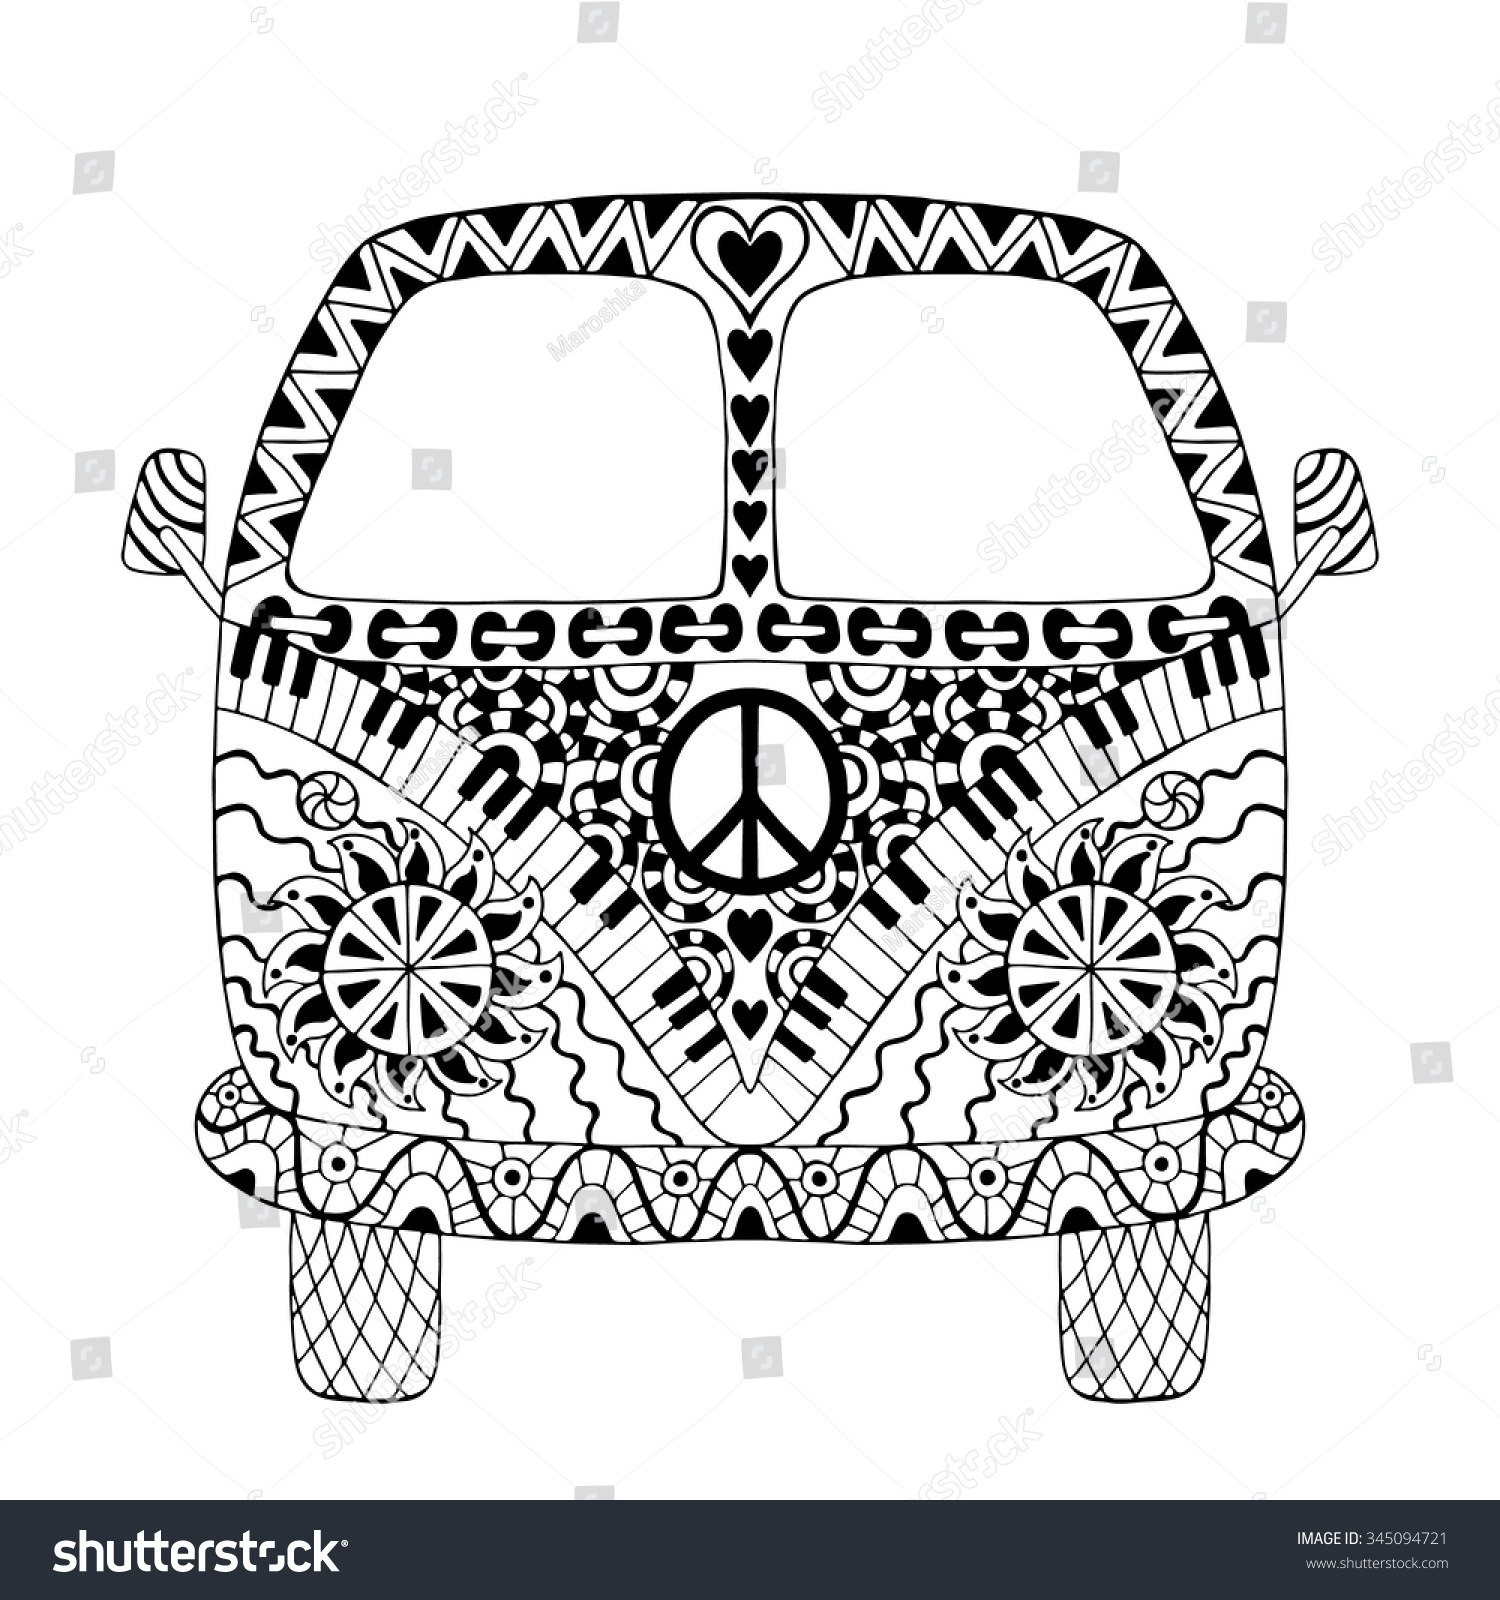 Coloring page with high details made by trace from sketch hippy monochrome vector illustration retro 1960s 60s 70s vector